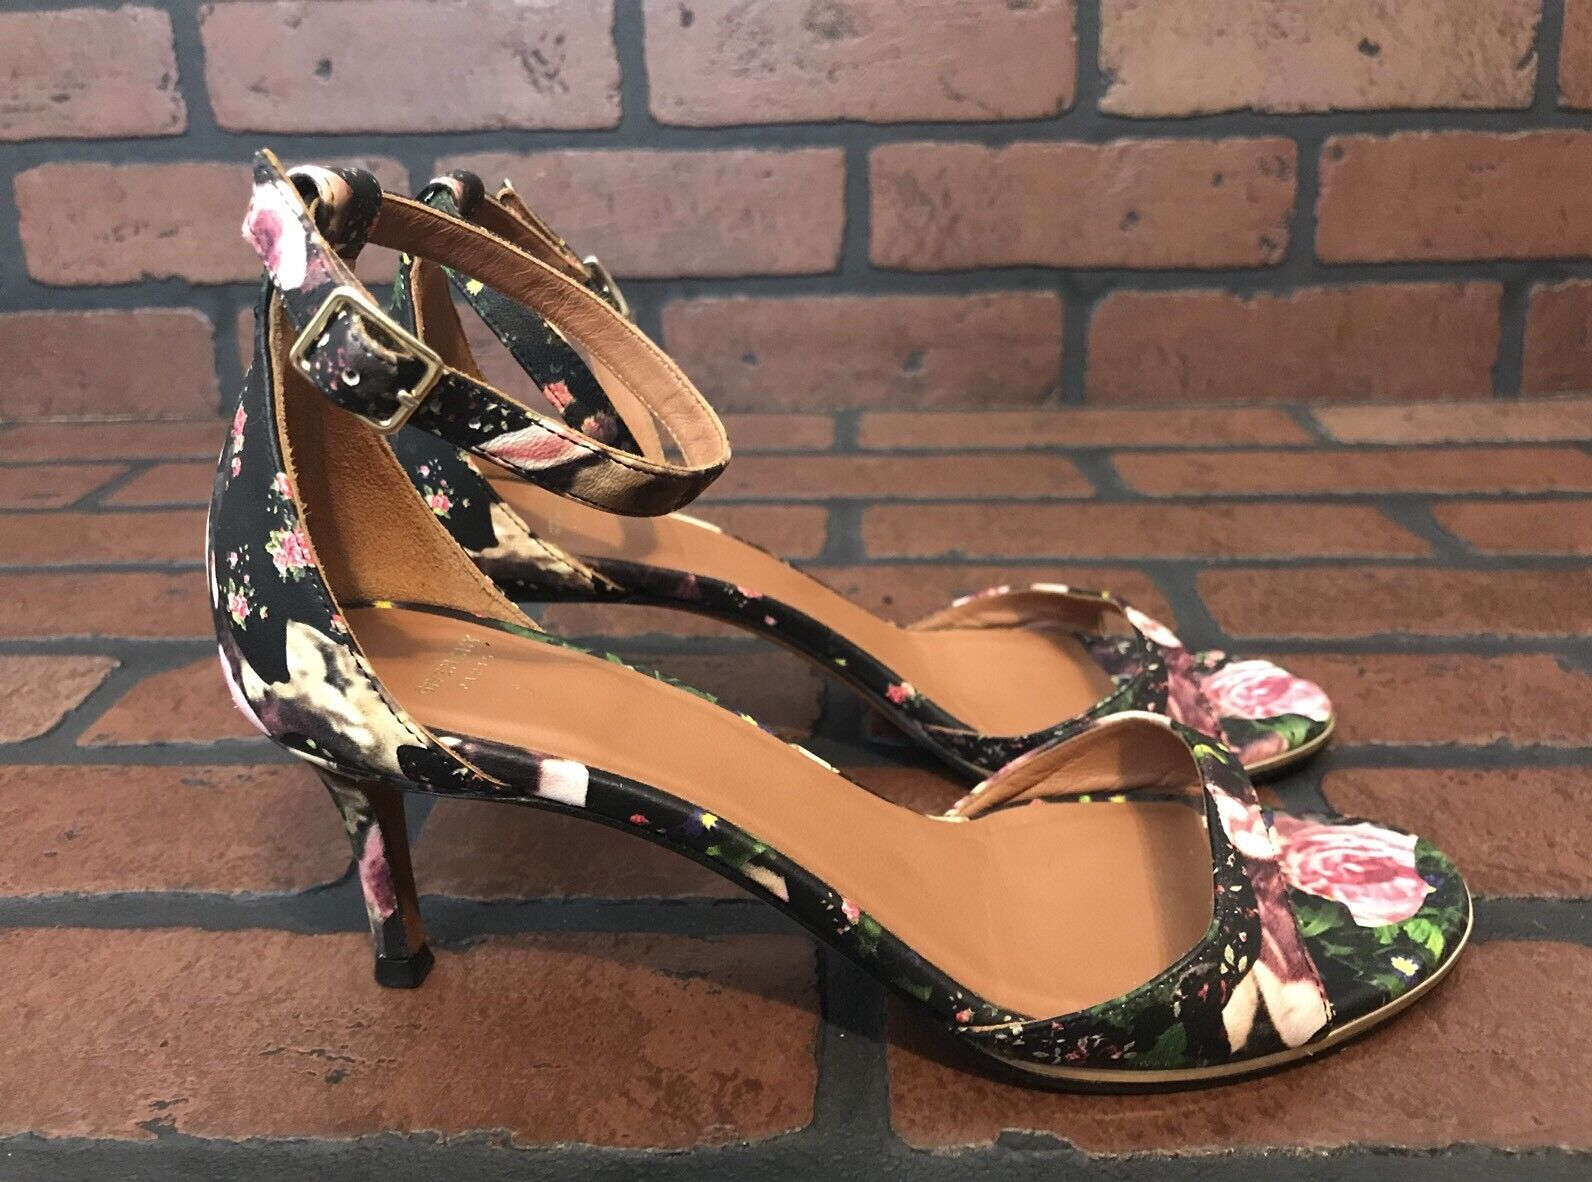 disponibile Givenchy Givenchy Givenchy Floral Print Ankle Strap Heels Dimensione 7  Ultimo 2018